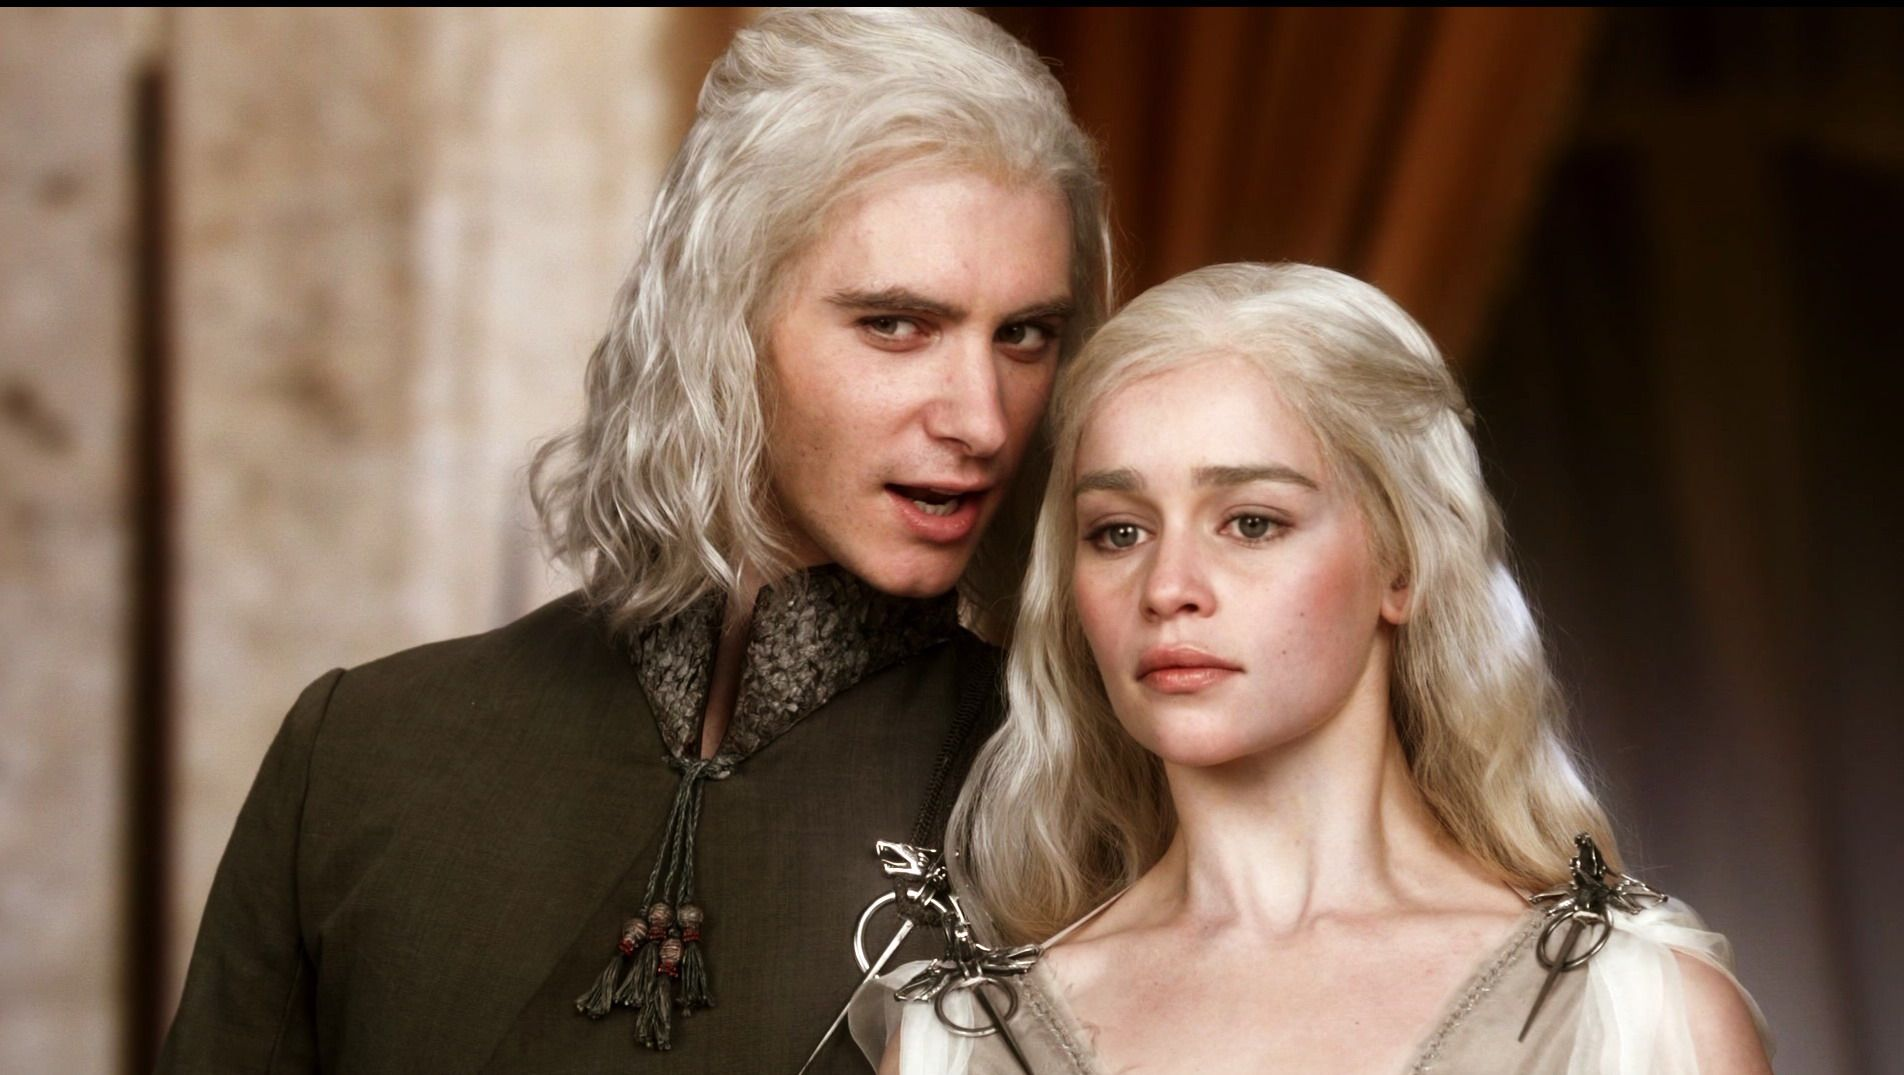 Game Of Thrones Season 1 | Viserys & Daenerys Targaryen